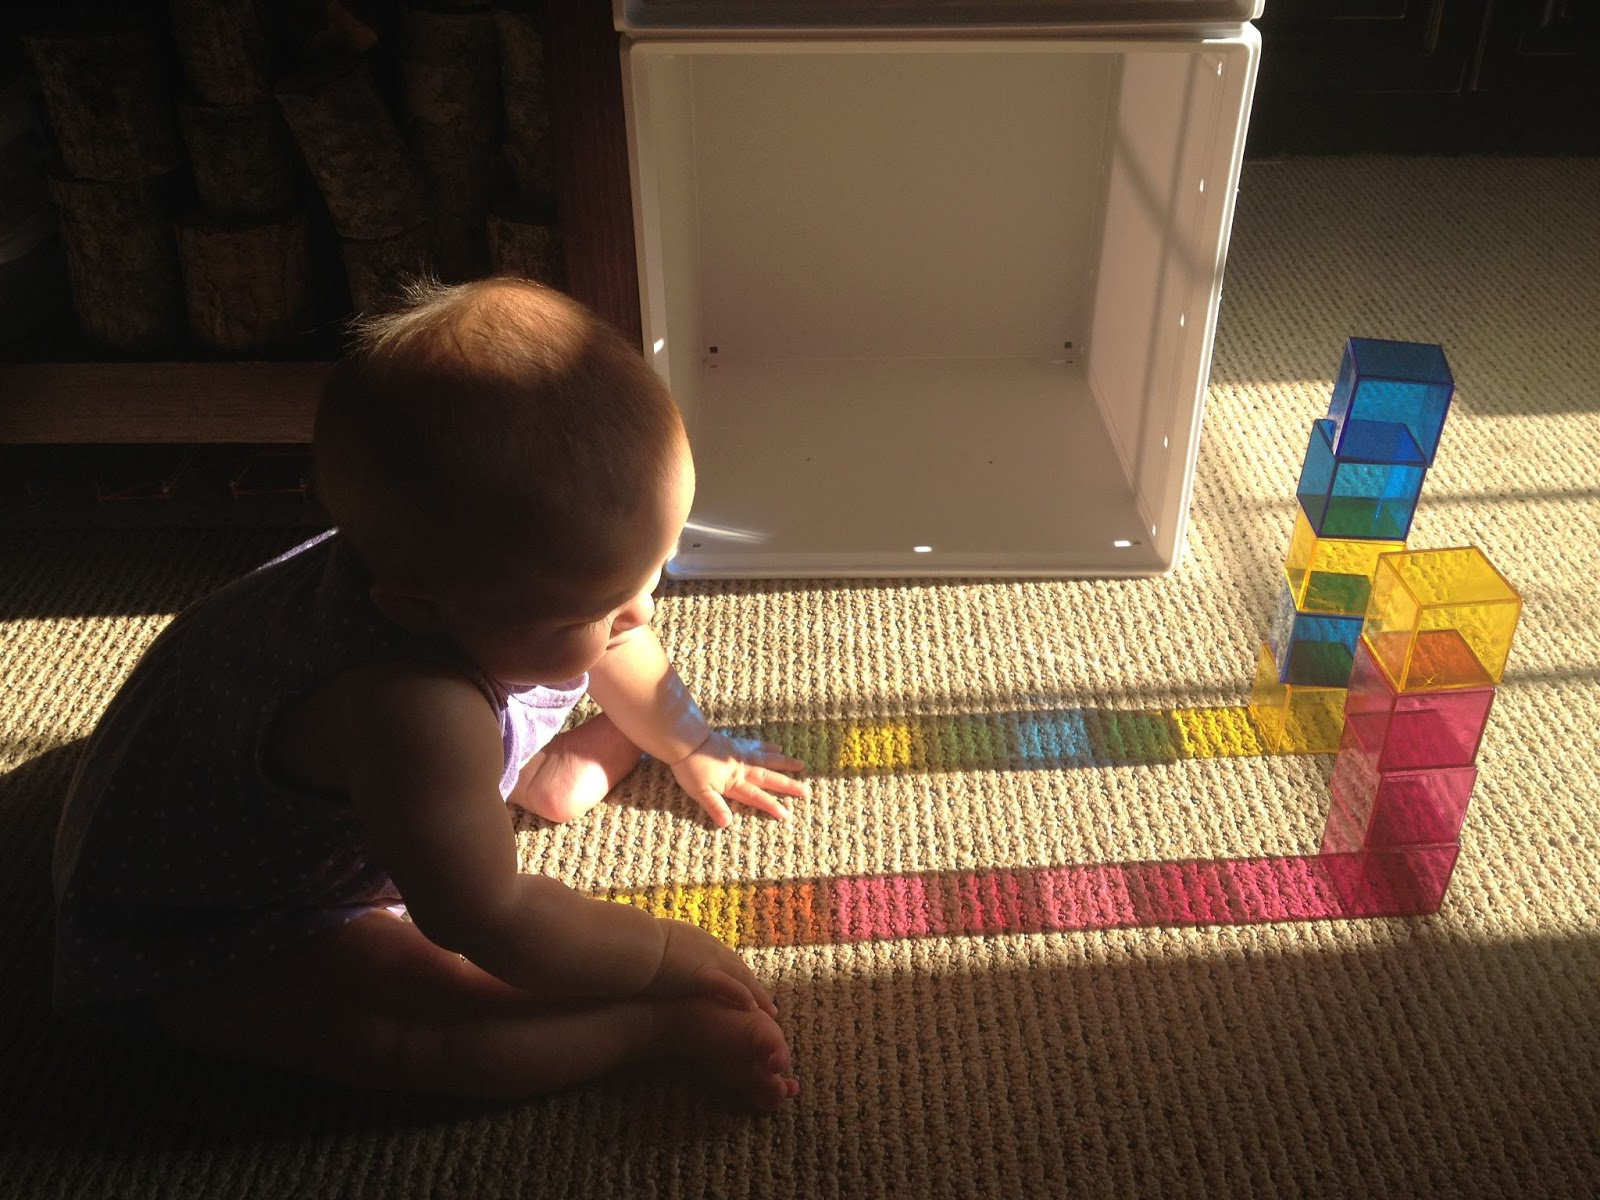 Sensory Toys For 12 Month Old : Play at home mom llc toys for months